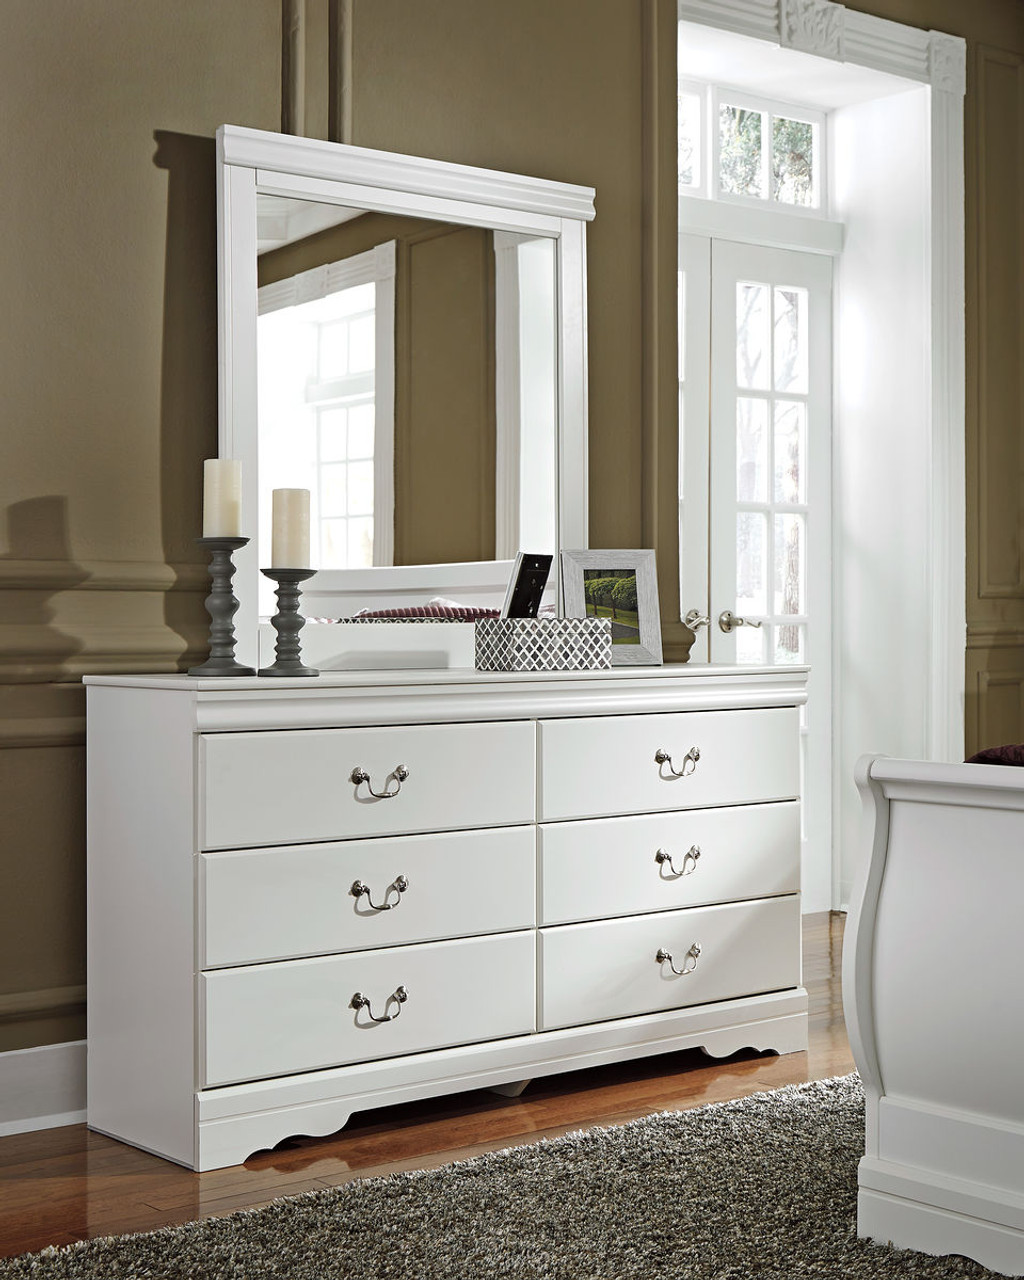 The Anarasia White Dresser Mirror Available At Regal House Outlet Serving New Bedford Ma And Surrounding Areas